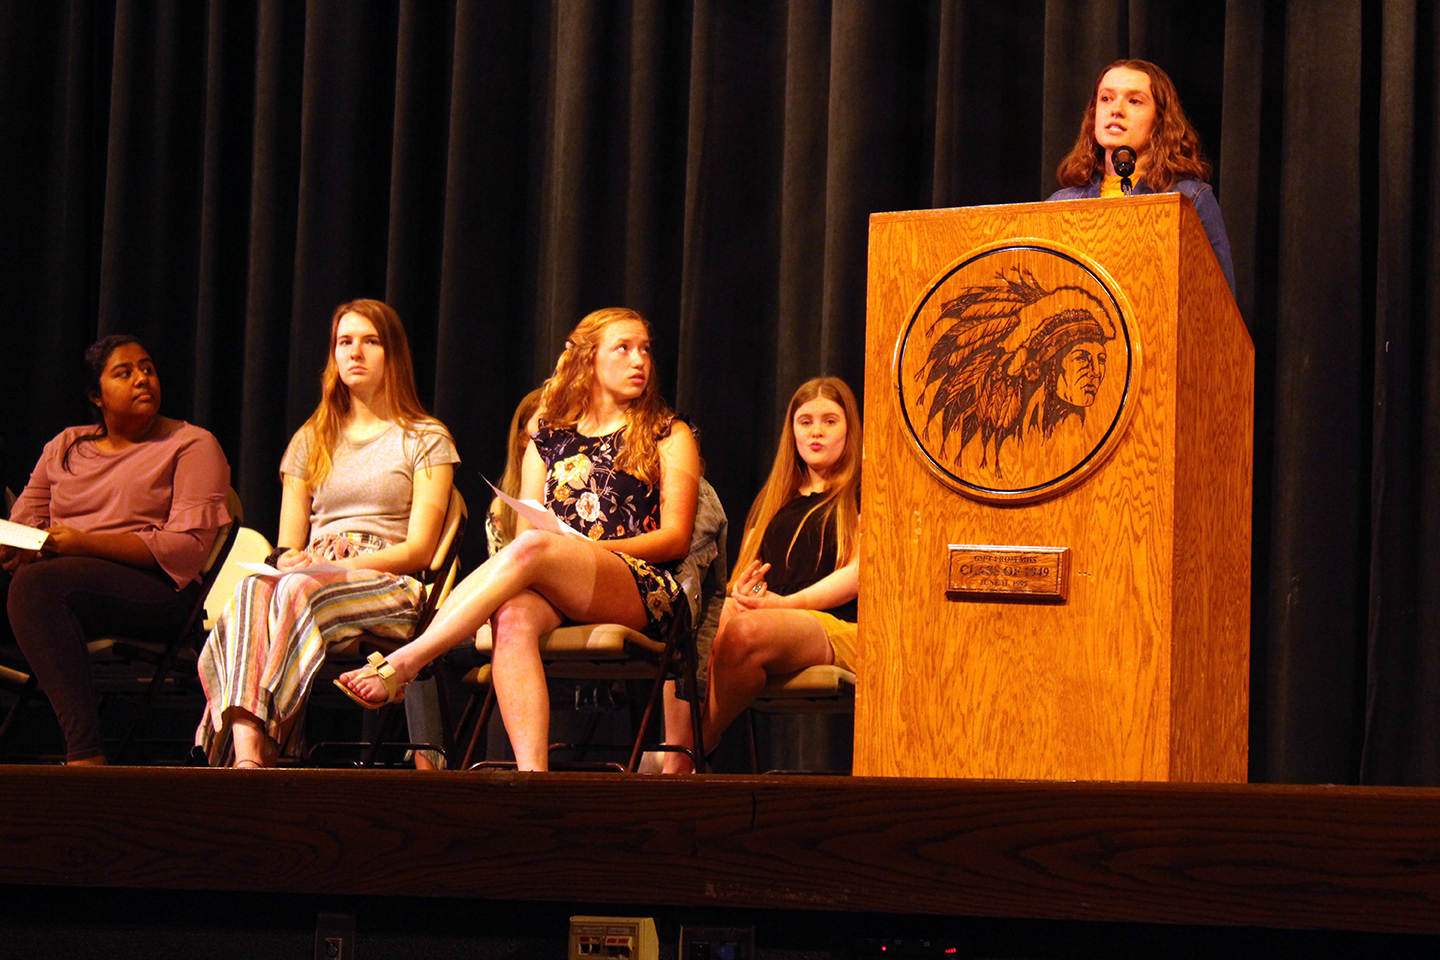 Juniors running for a position in StuCo.  Macy Hendricks looks to Elizabeth Chapman as she gives her speech.